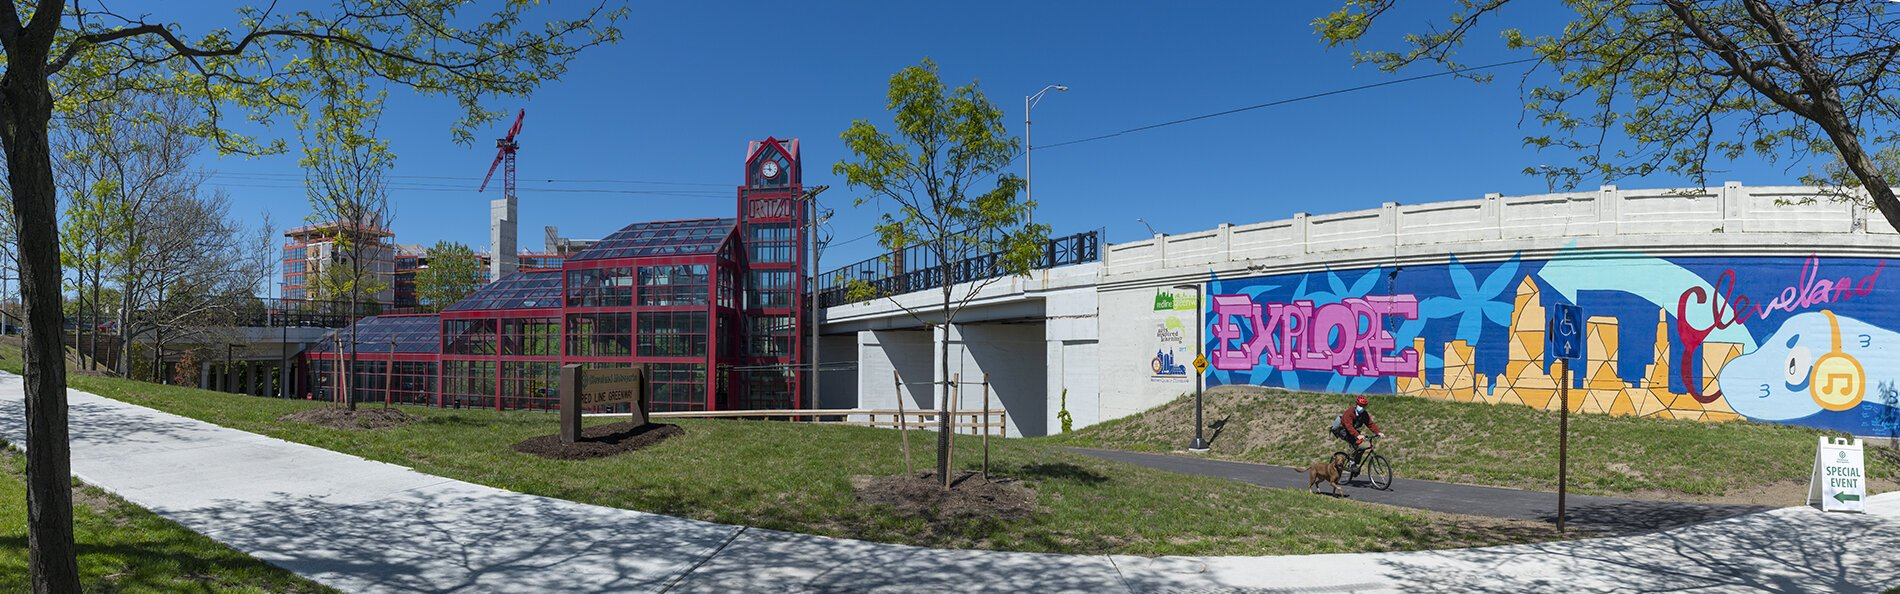 The Newly opened Red Line Greenway Trailhead